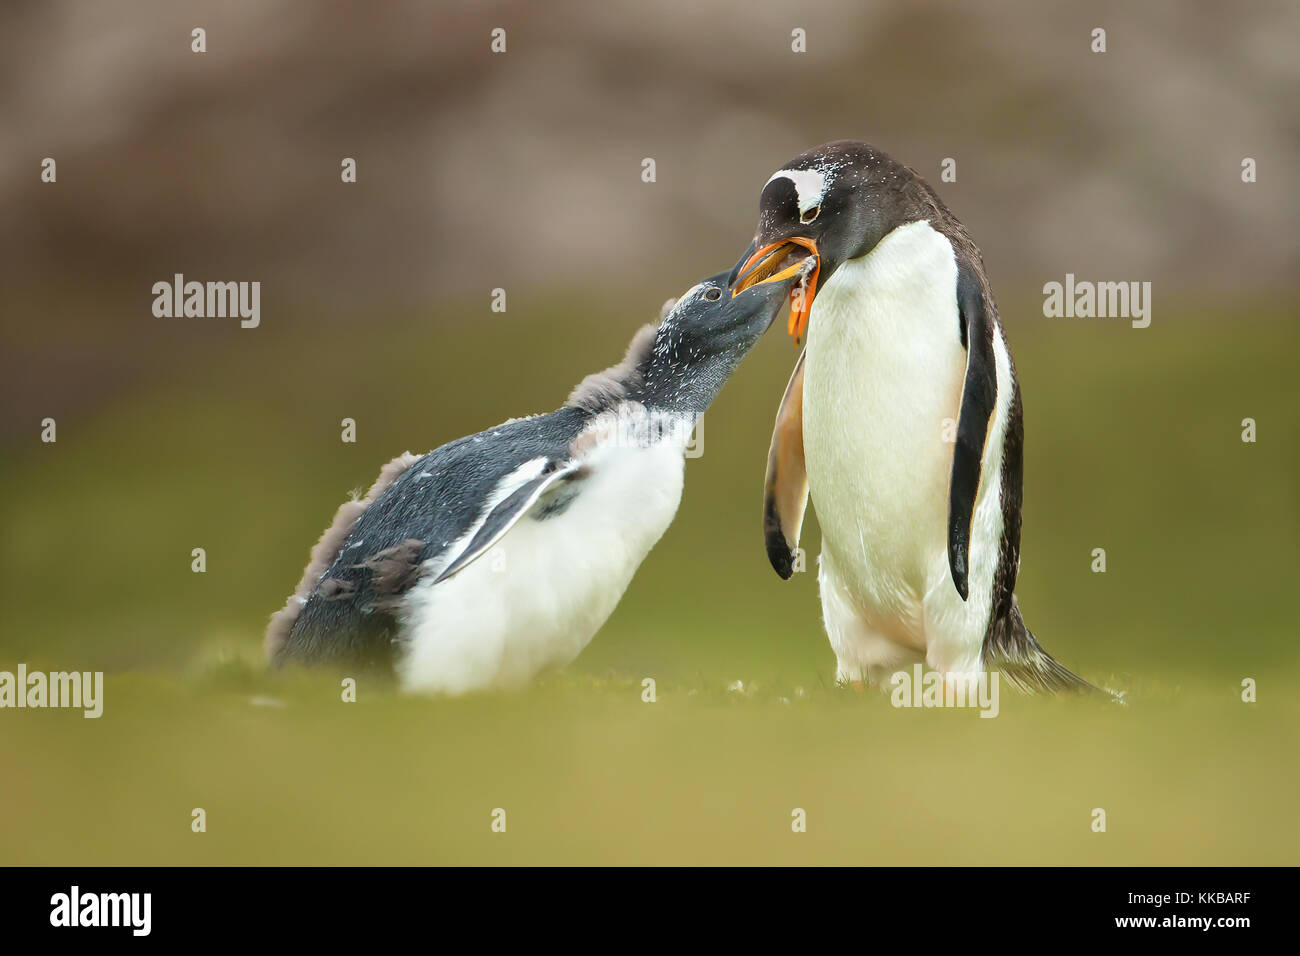 Isolated Adult gentoo penguin feeding a young molting chick in the Falkland islands - Stock Image